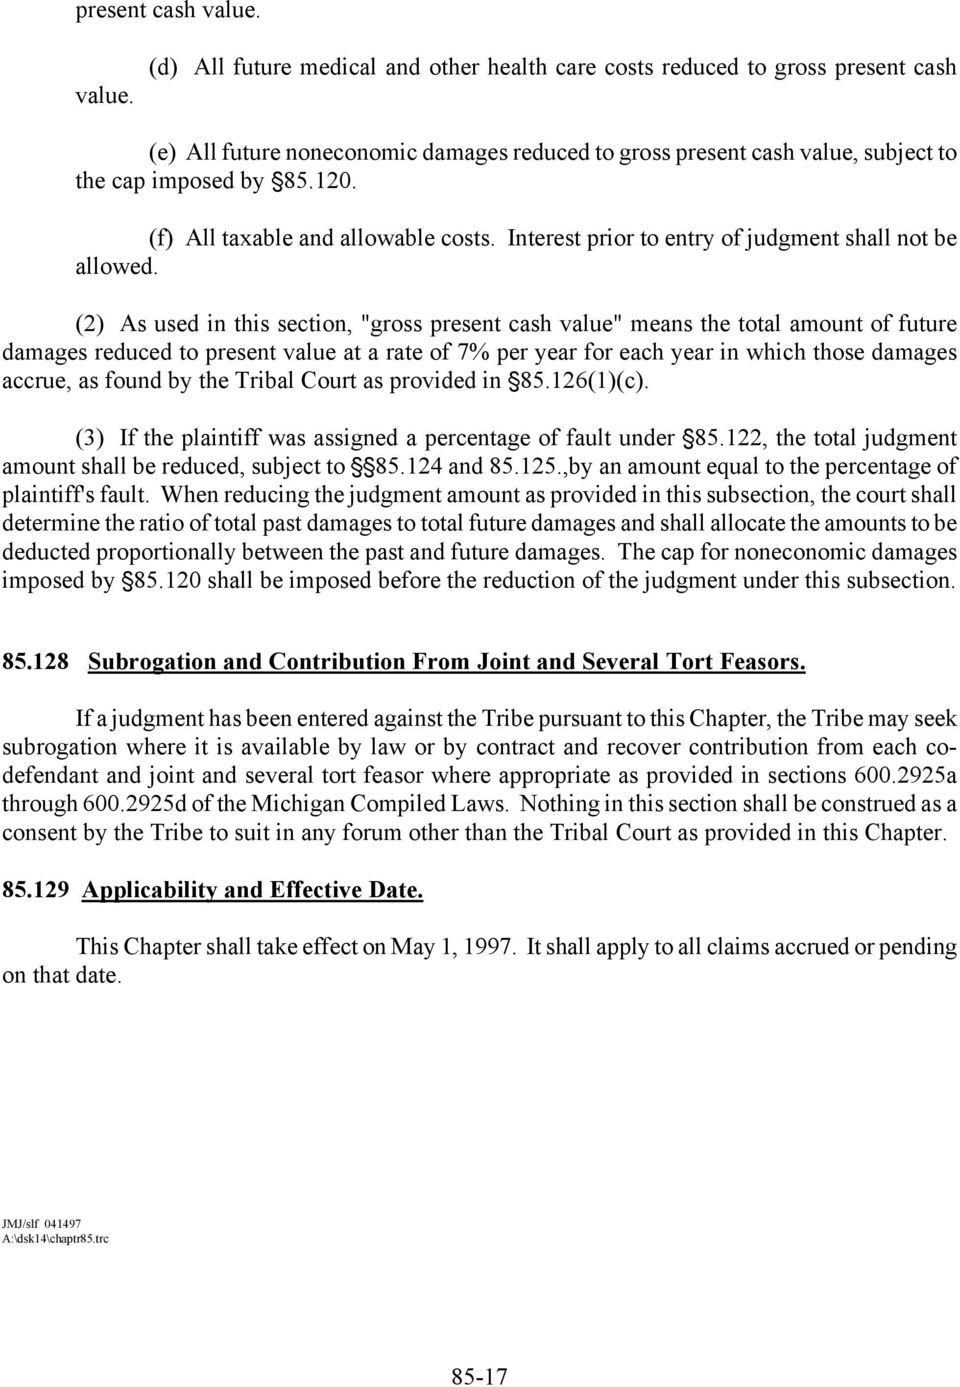 (f) All taxable and allowable costs. Interest prior to entry of judgment shall not be allowed.